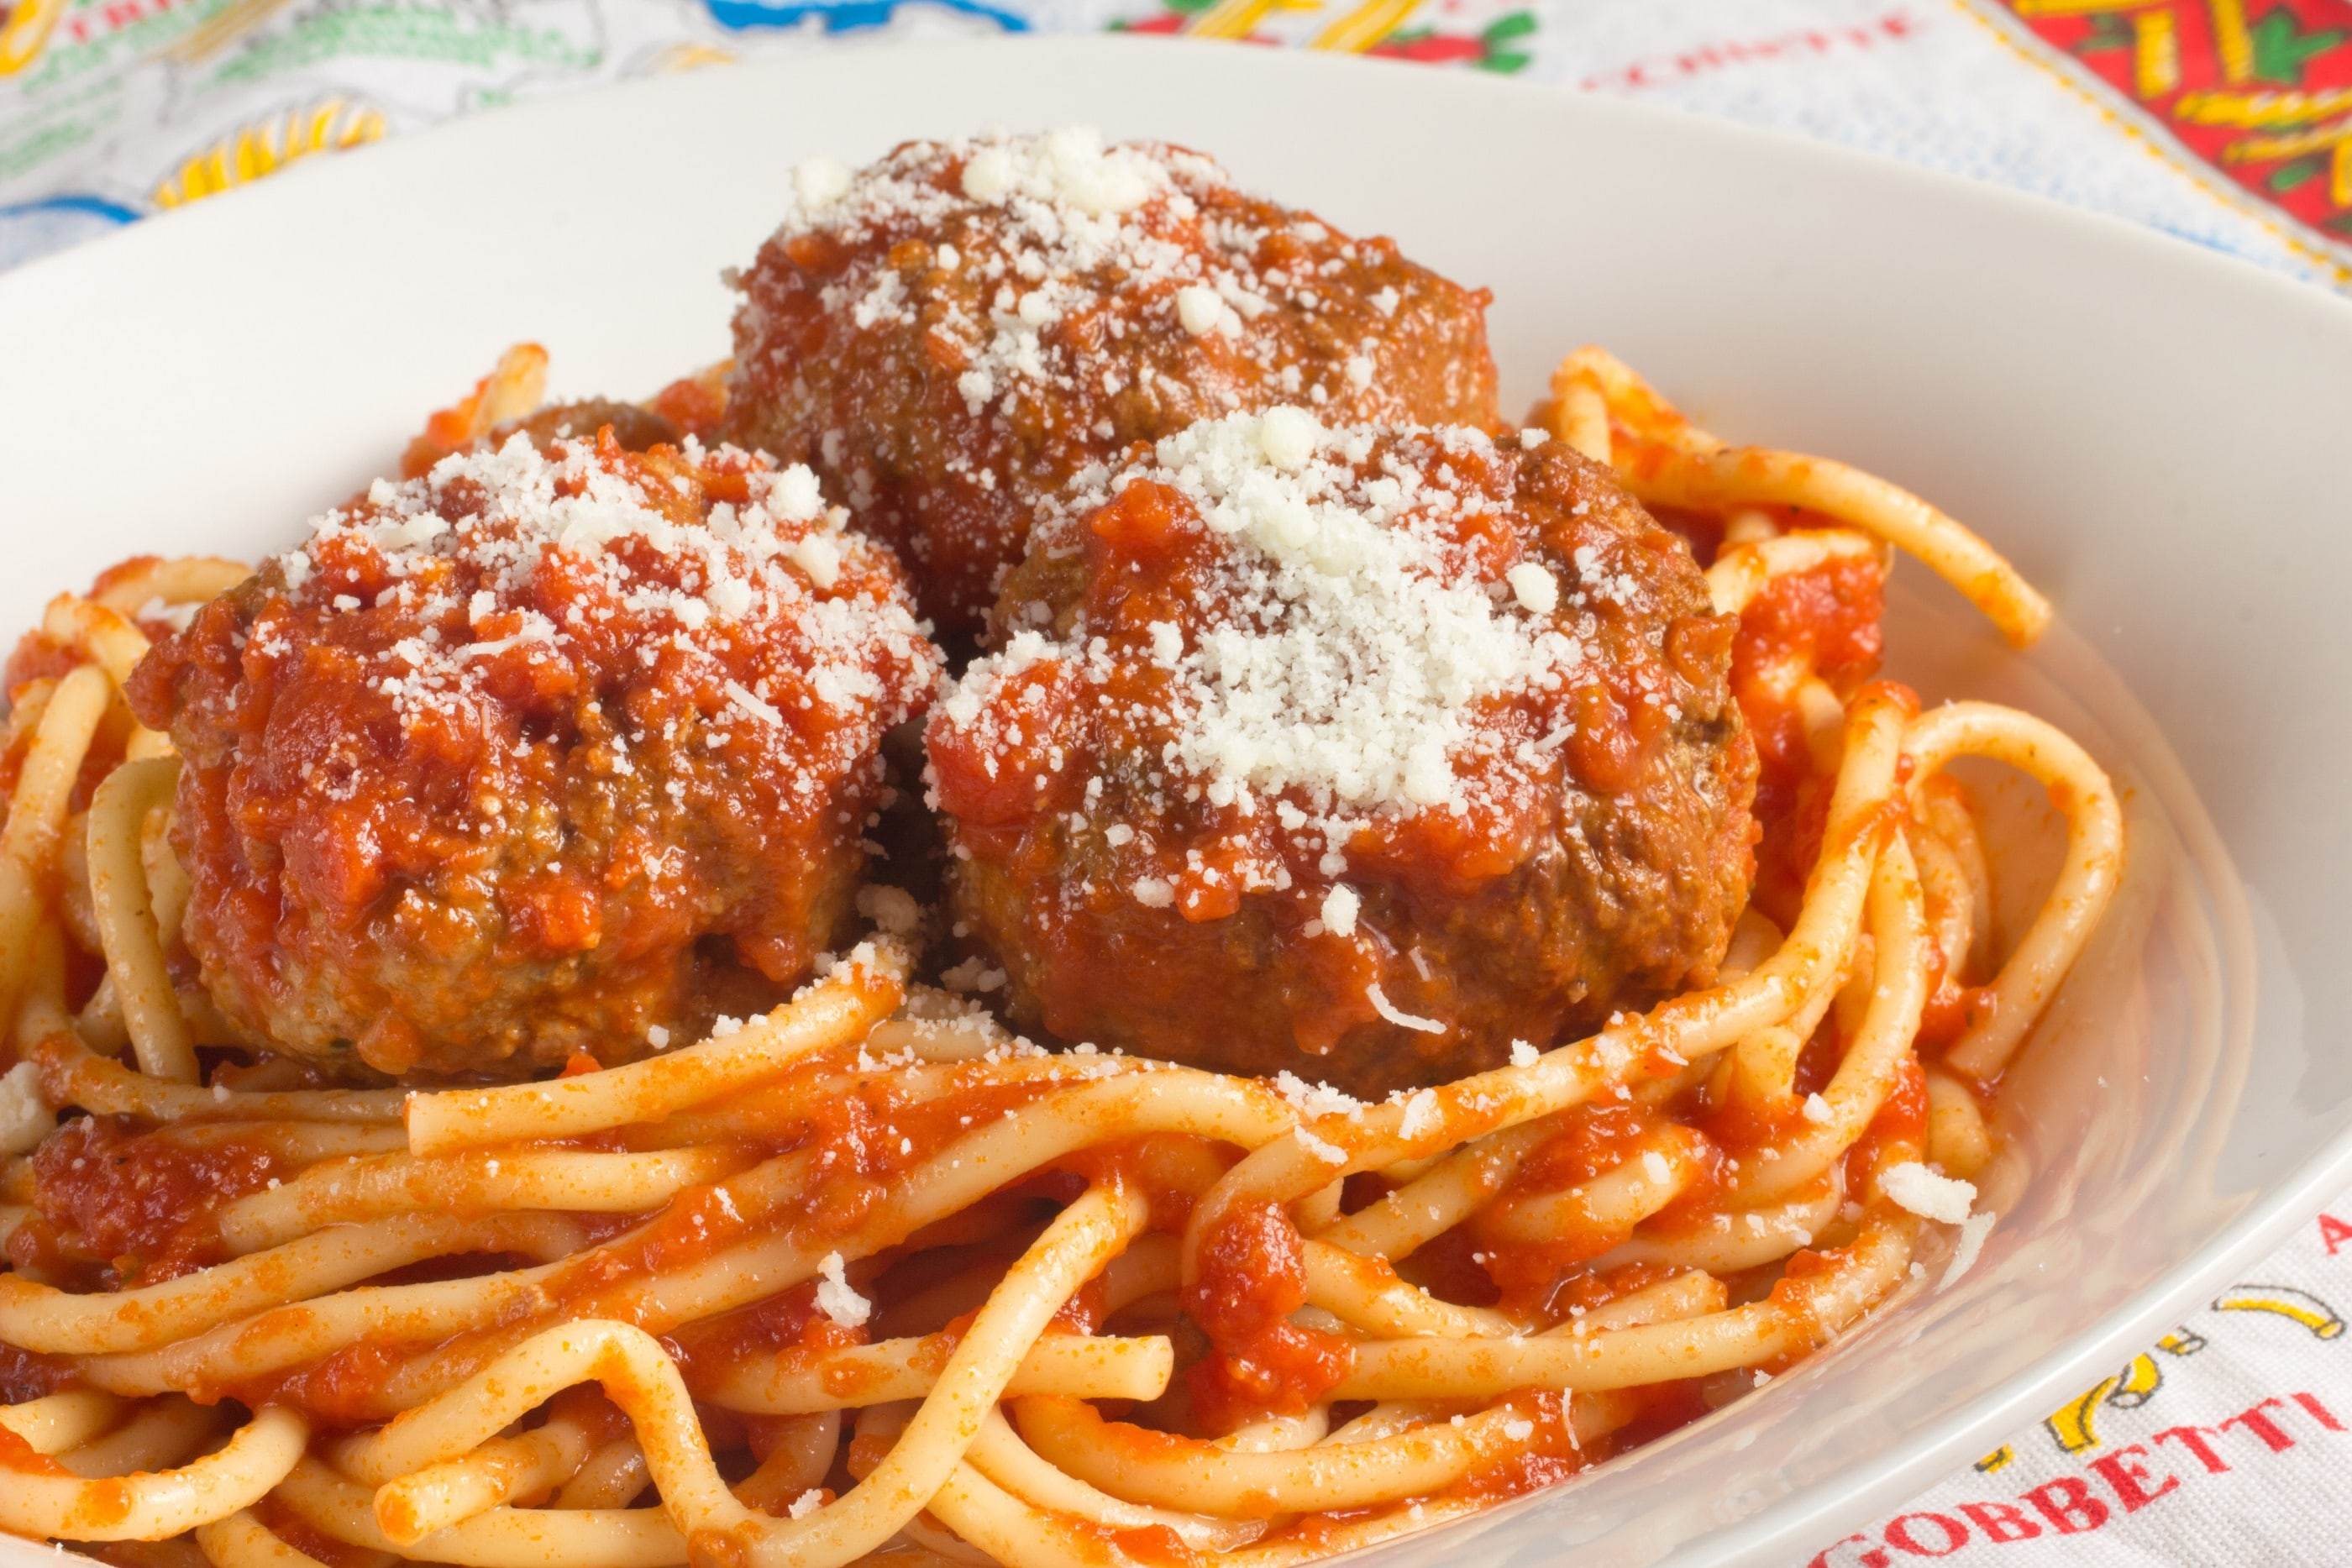 Spaghetti and meatballs in white dish